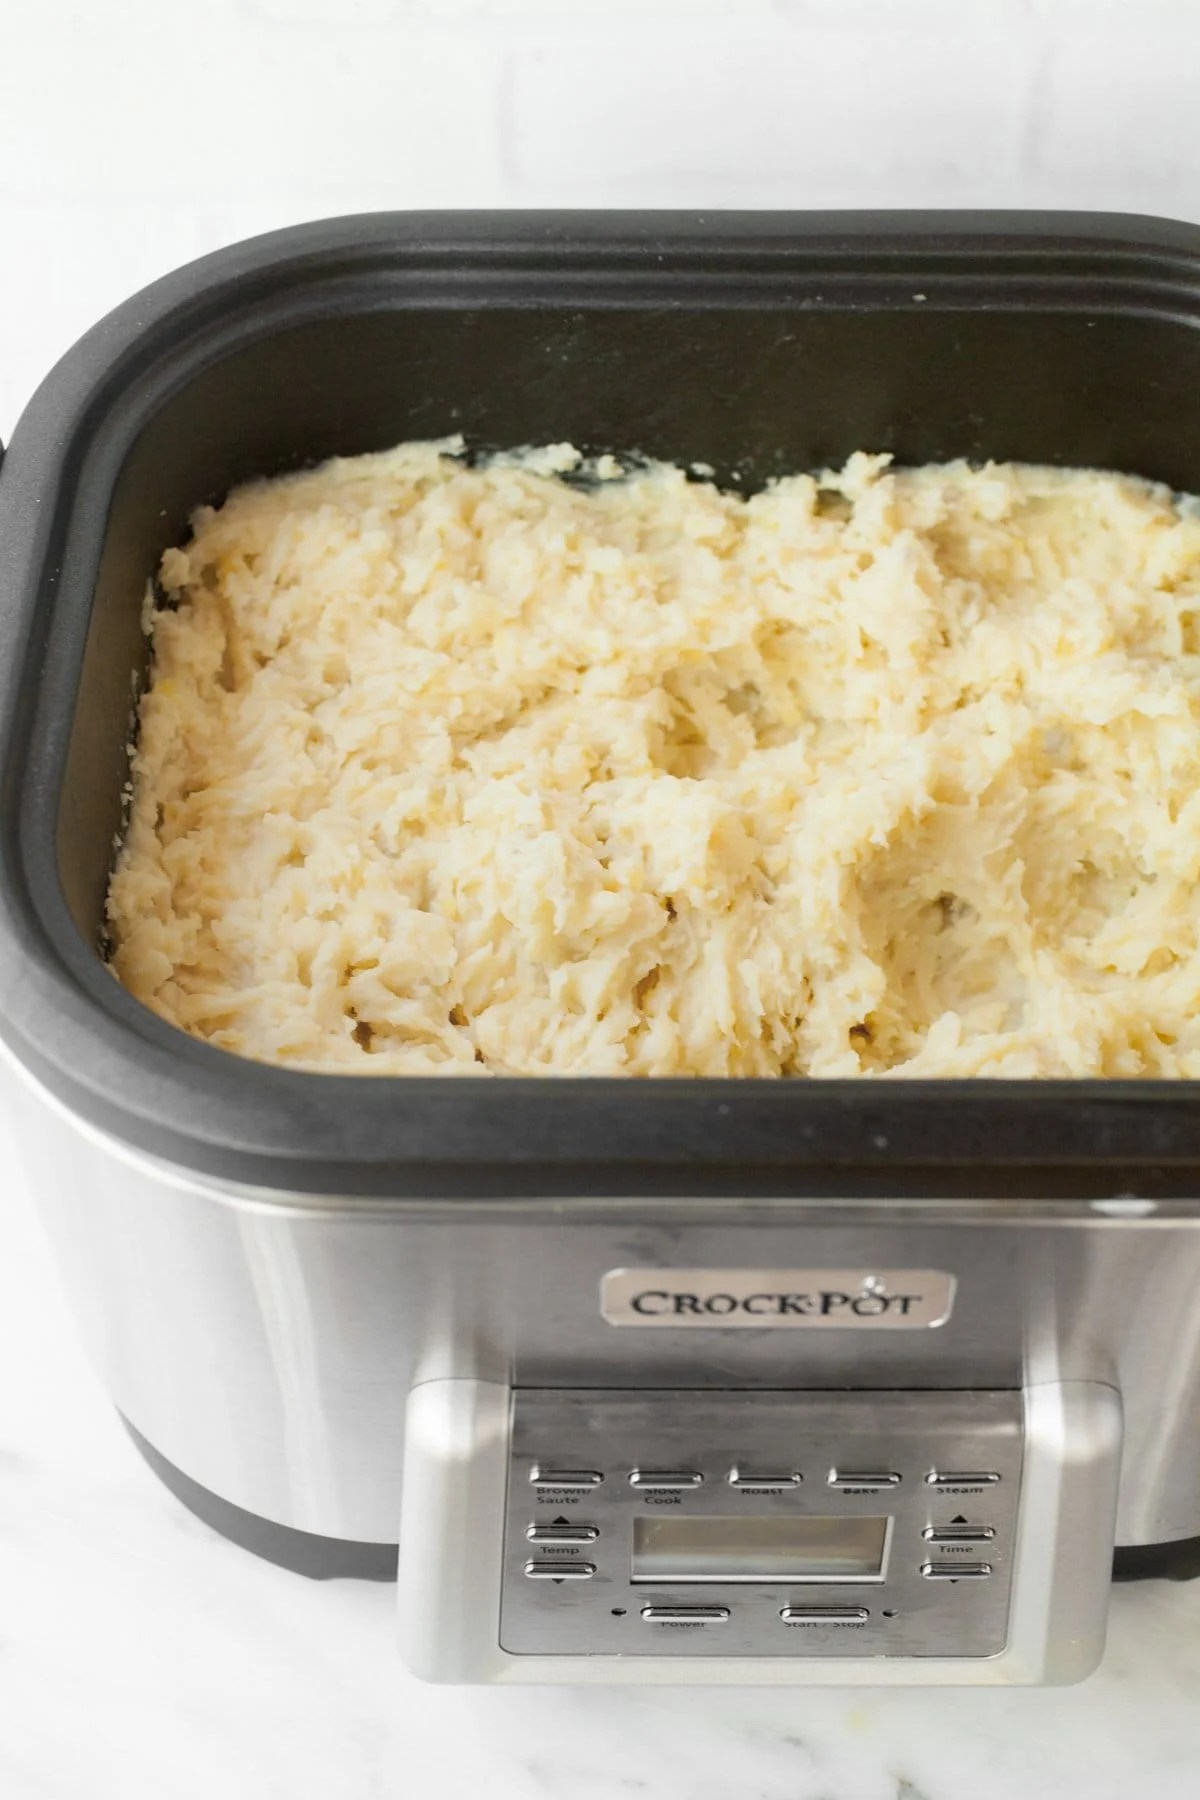 Fluffy mashed potatoes in a large Crock-Pot slow cooker on a white countertop.